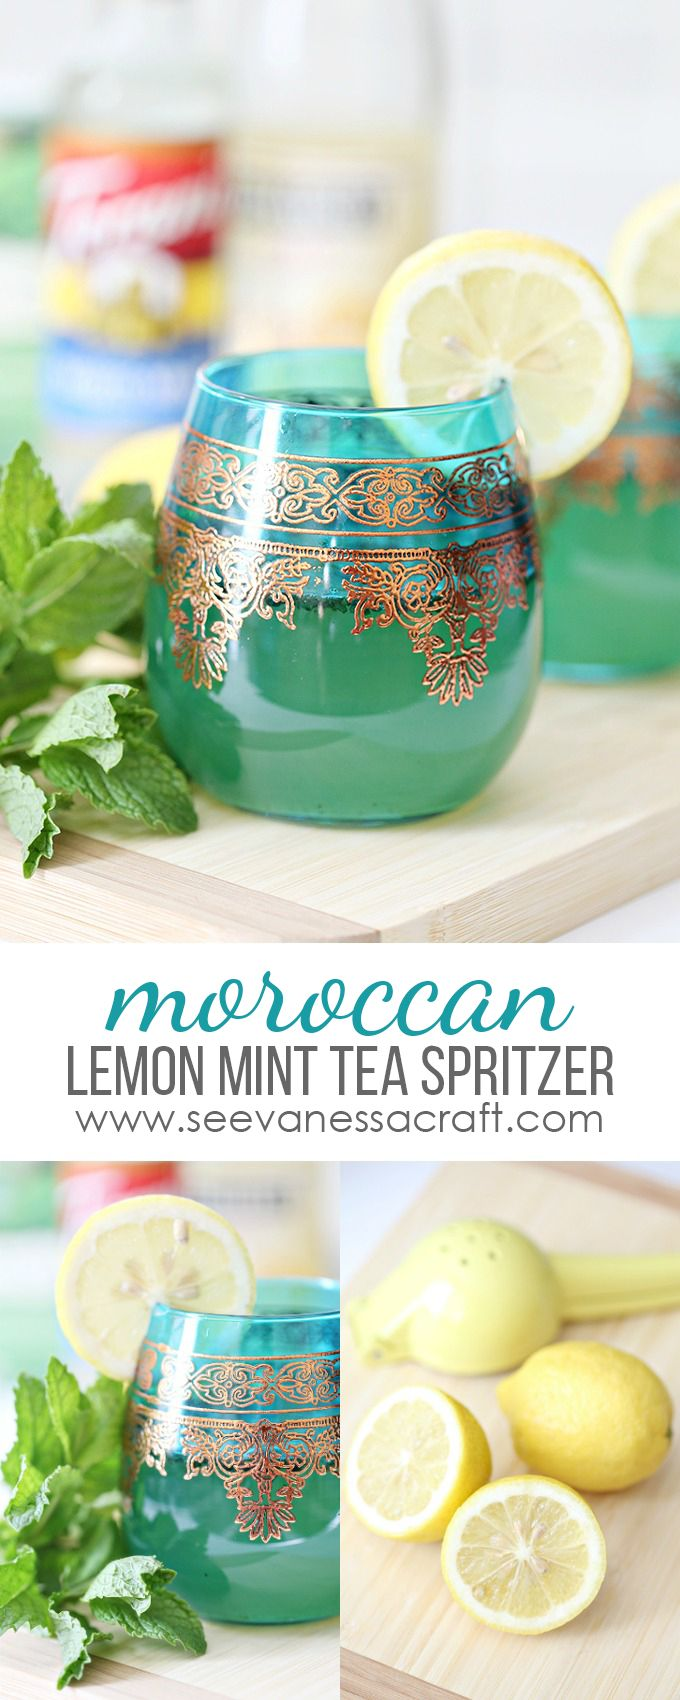 Moroccan Lemon Mint Tea Spritzer Drink Recipe @worldmarket #worldmarkettribe #FallHomeRefresh #ad